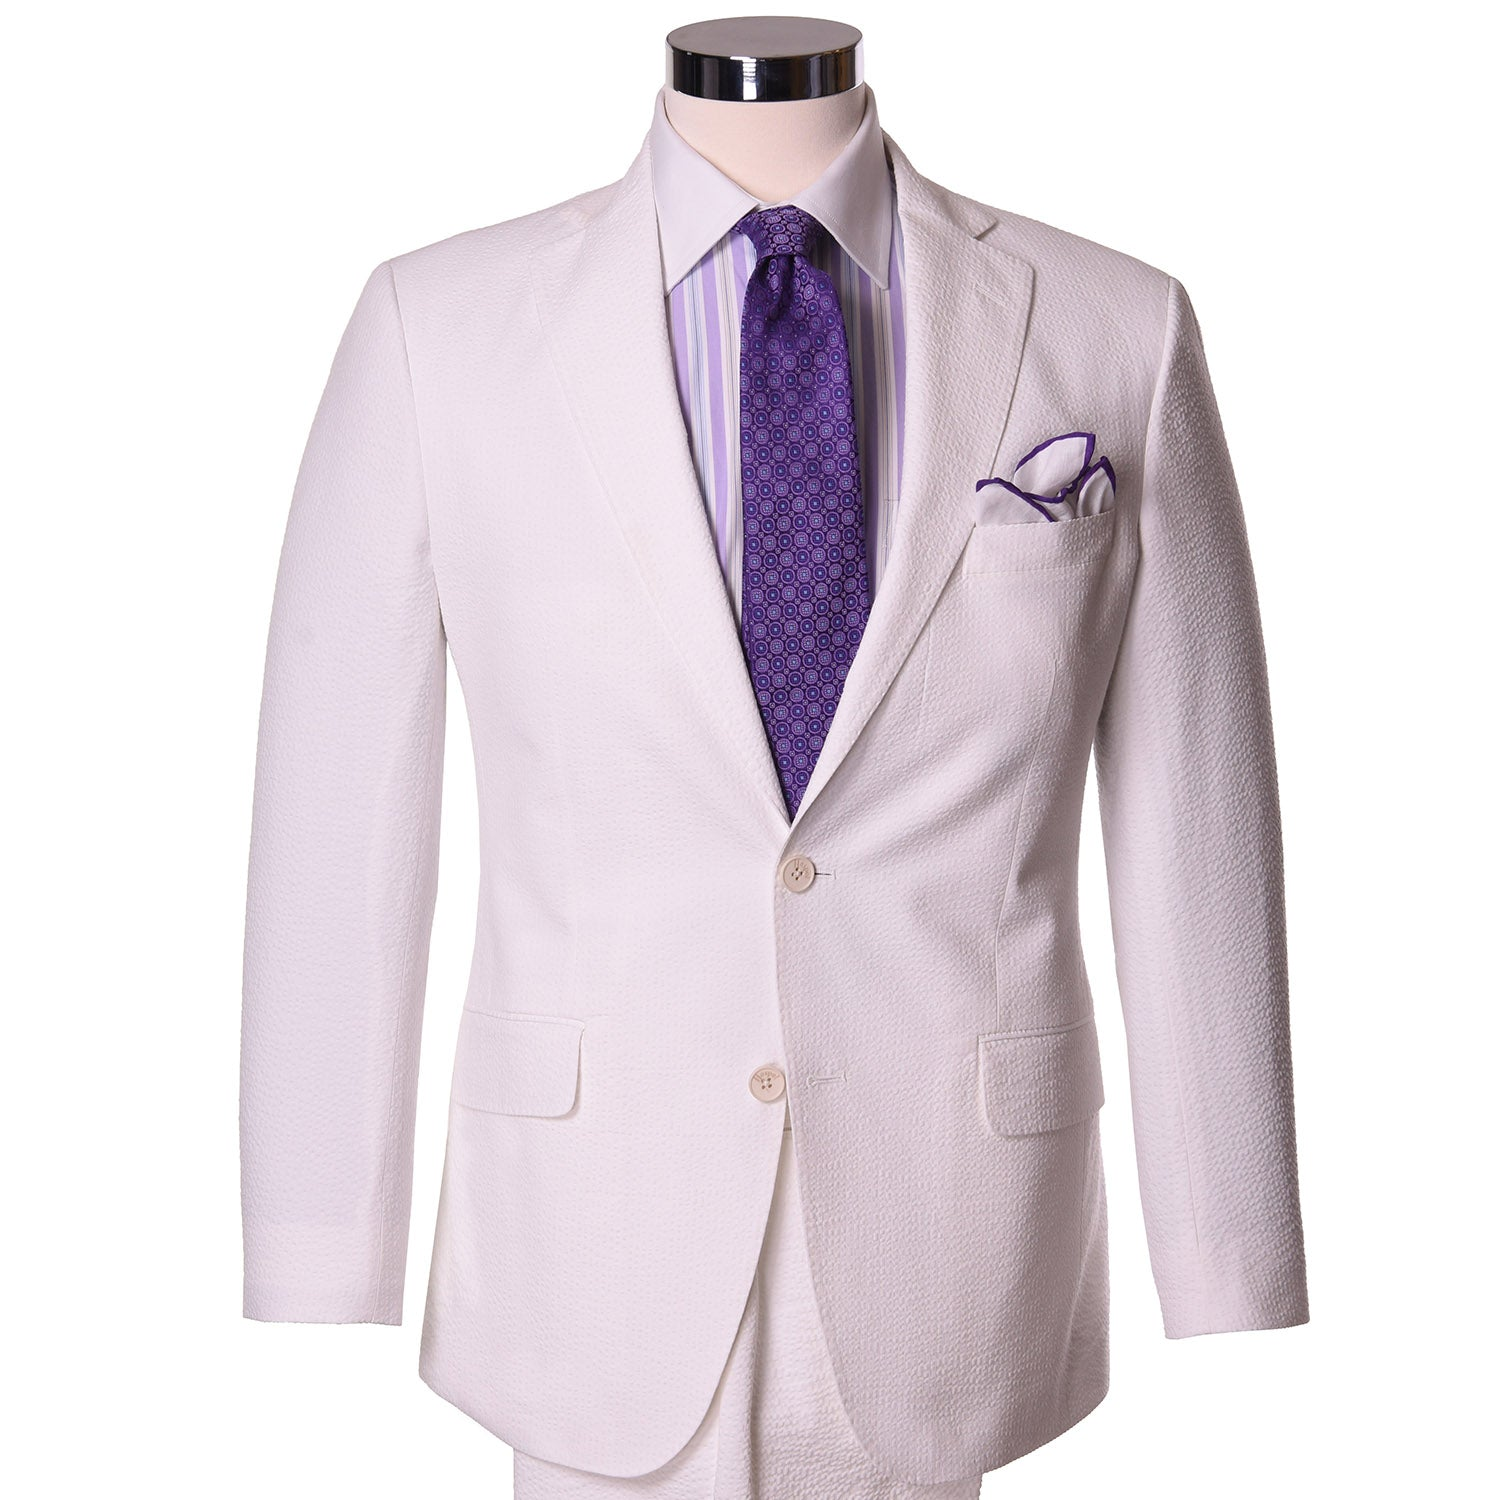 Magnolia White Seersucker Sport Coat - Haspel Clothing